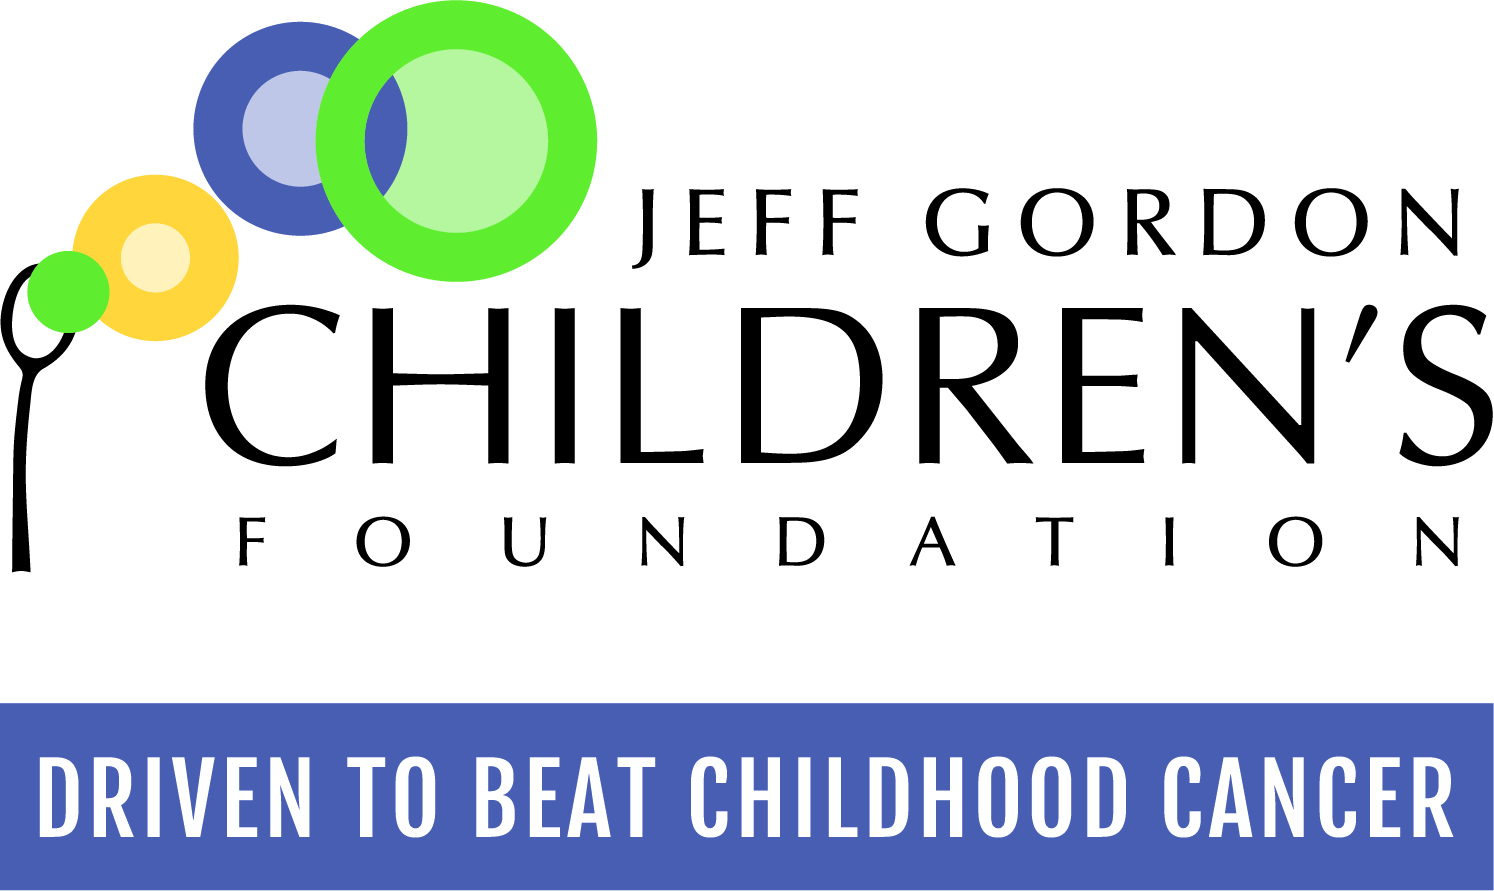 Jeff Gordon Children's Foundation logos